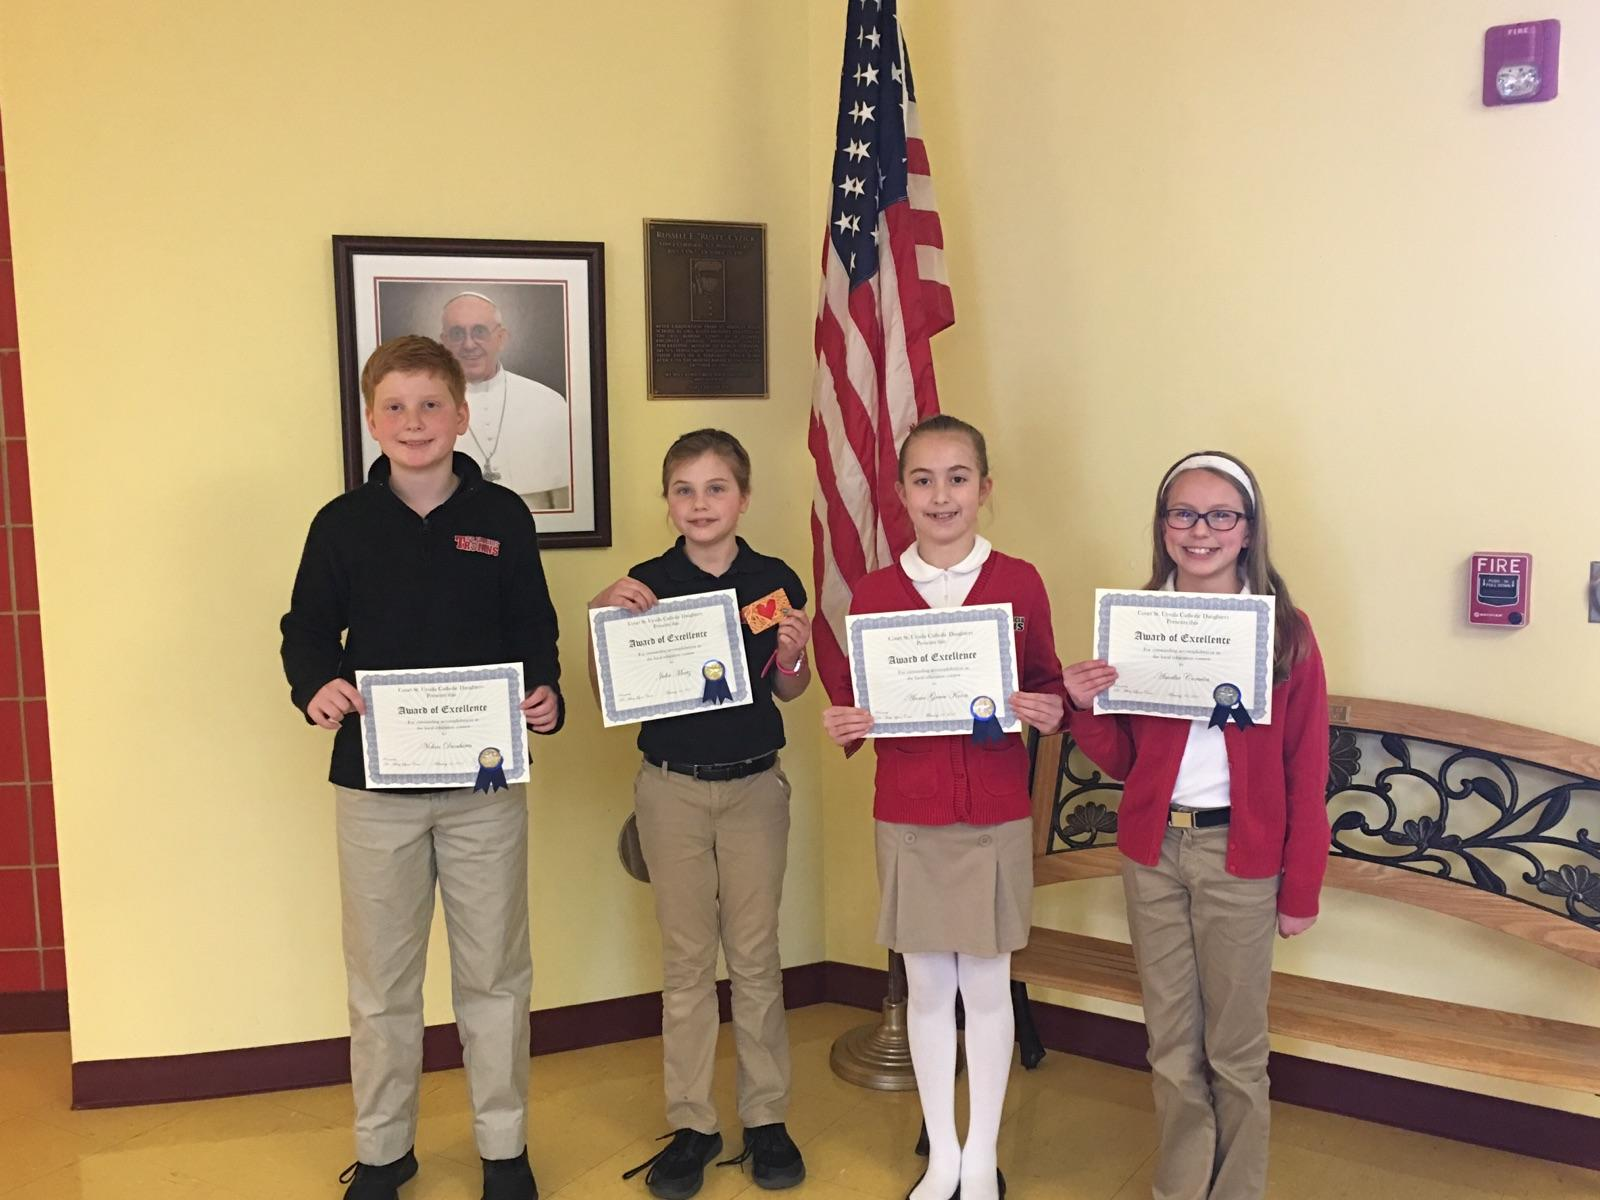 mcdonalds essay contest Congratulations to our winners thanks to everyone who participated in the regions riding forward scholarship essay contest from more than 4,480 entries, 25 winners were selected from across regions' banking areas.